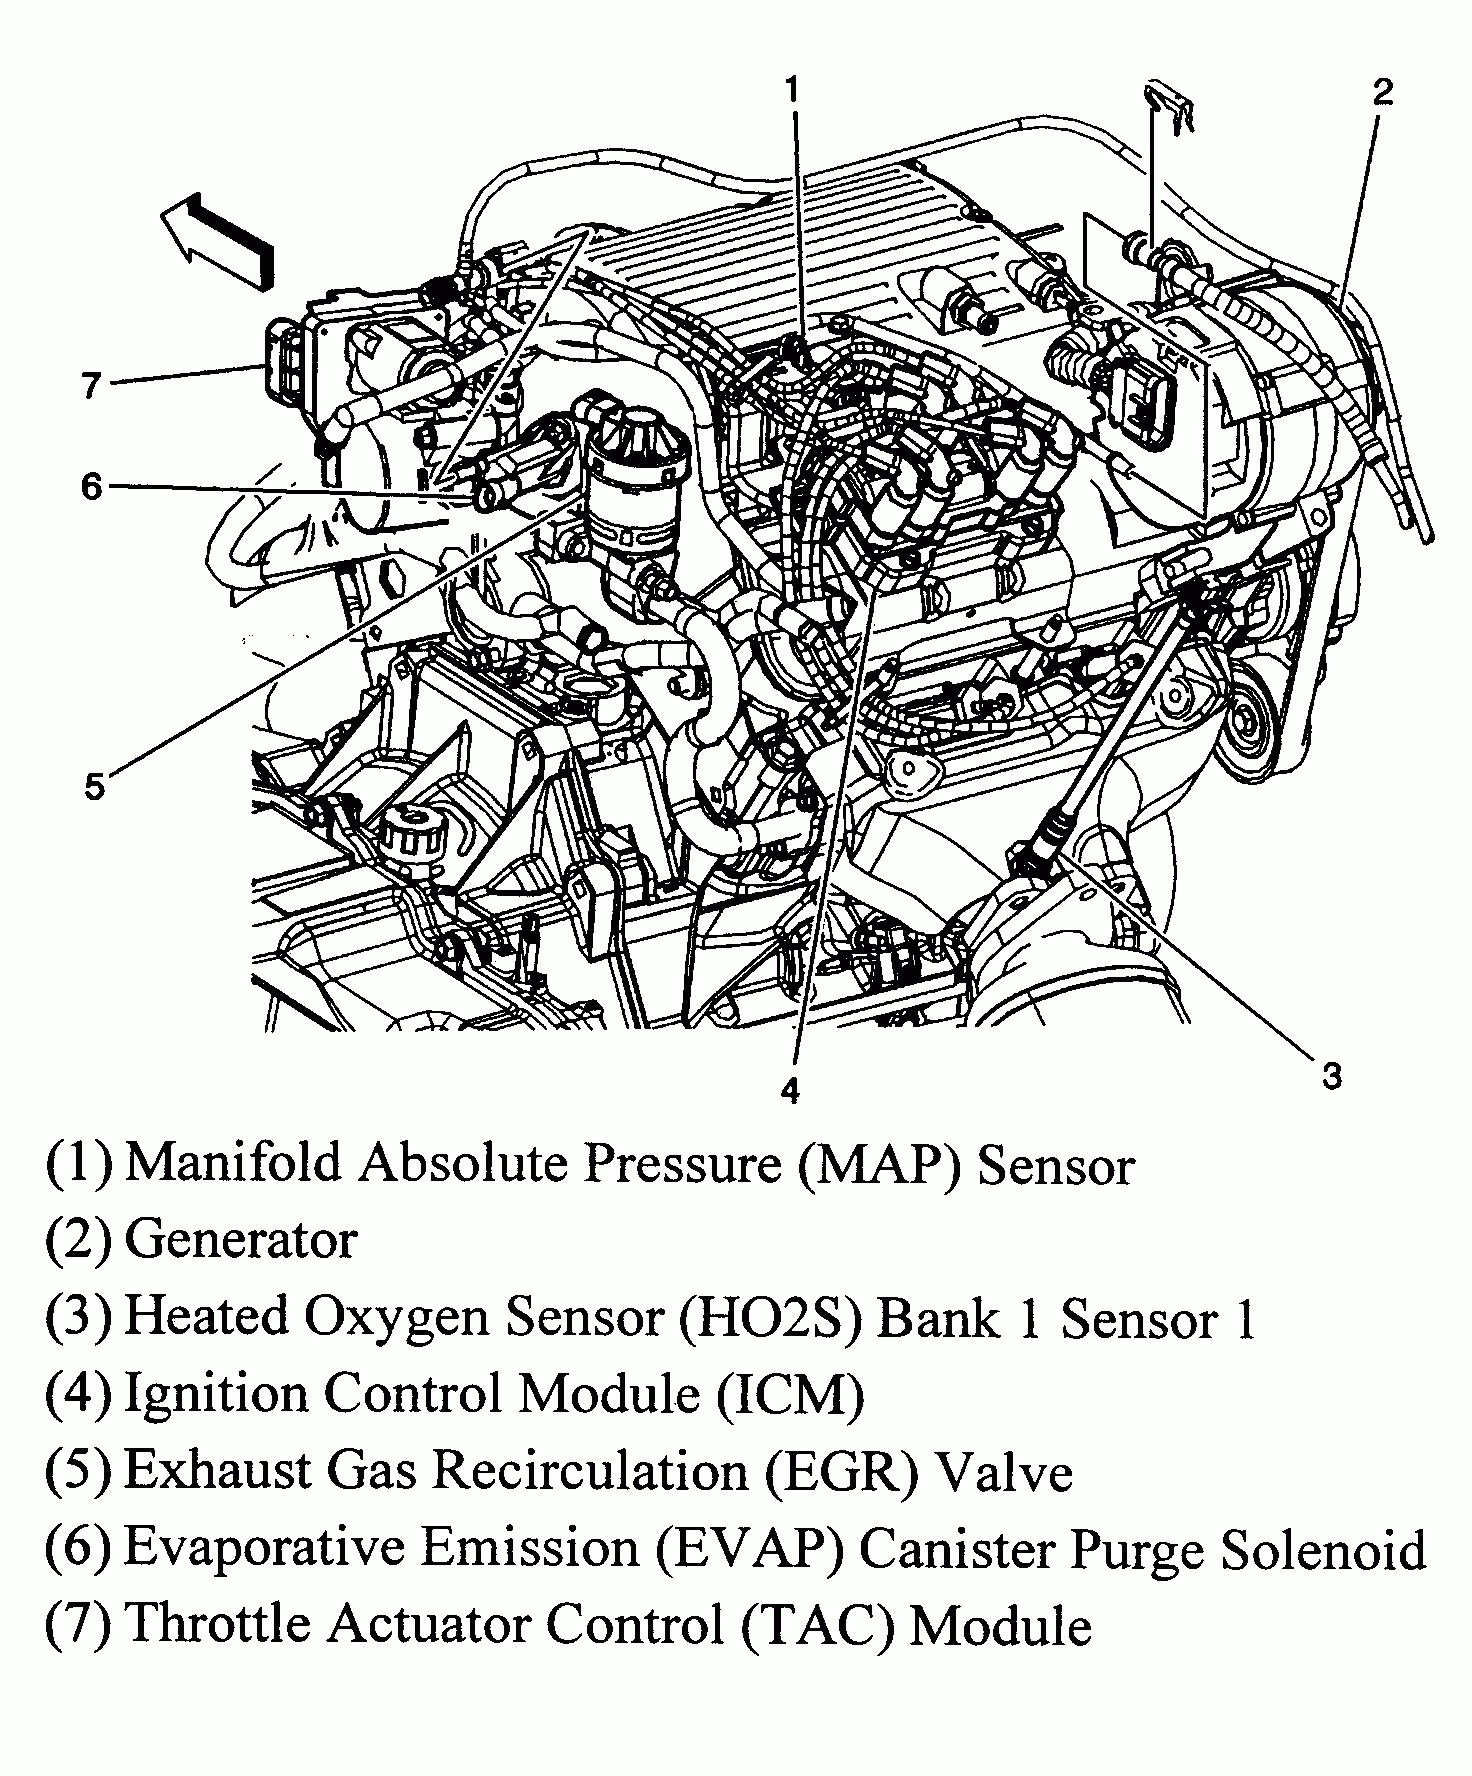 2007 Pontiac G6 4 Cylinder Engine Diagram Good Guide Of Wiring 05 Crown Vic Fuse Rh 11 Samovila De 2005